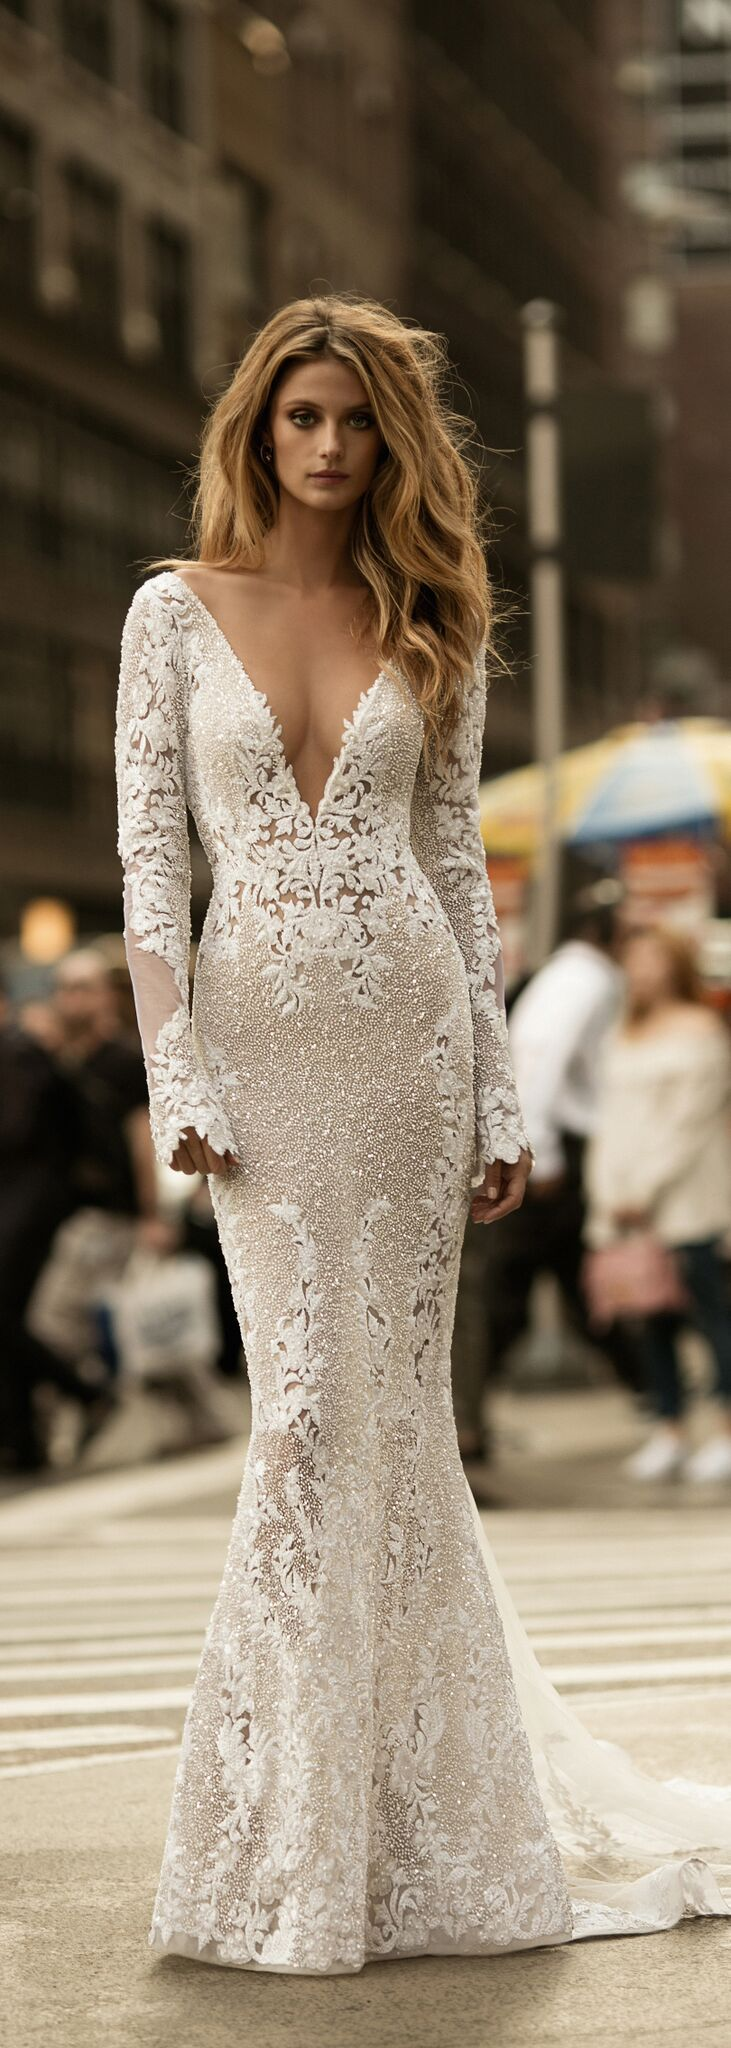 Wow So much texture! This @bertabridal gown is just phenomenal!